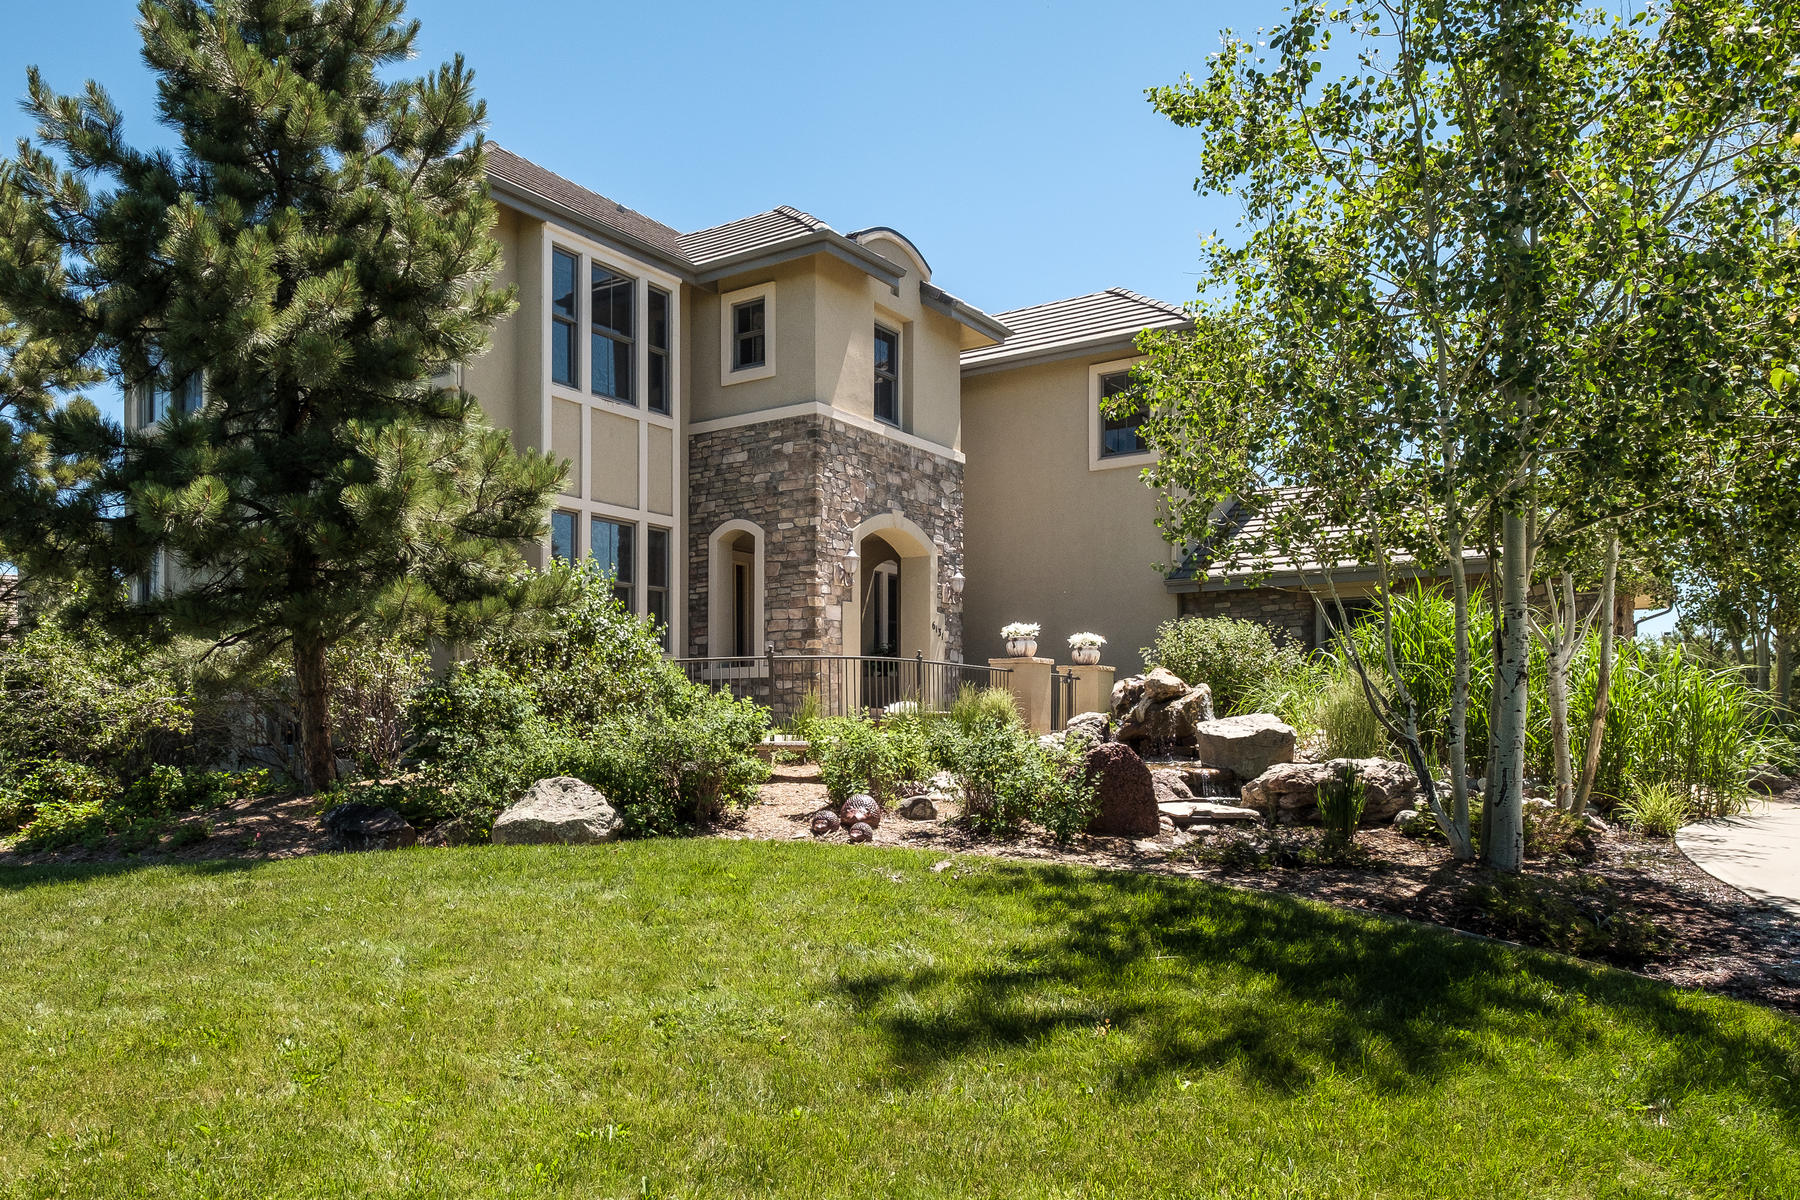 Single Family Home for Active at 6131 Missouri Peak Pl Castle Rock, Colorado 80108 United States